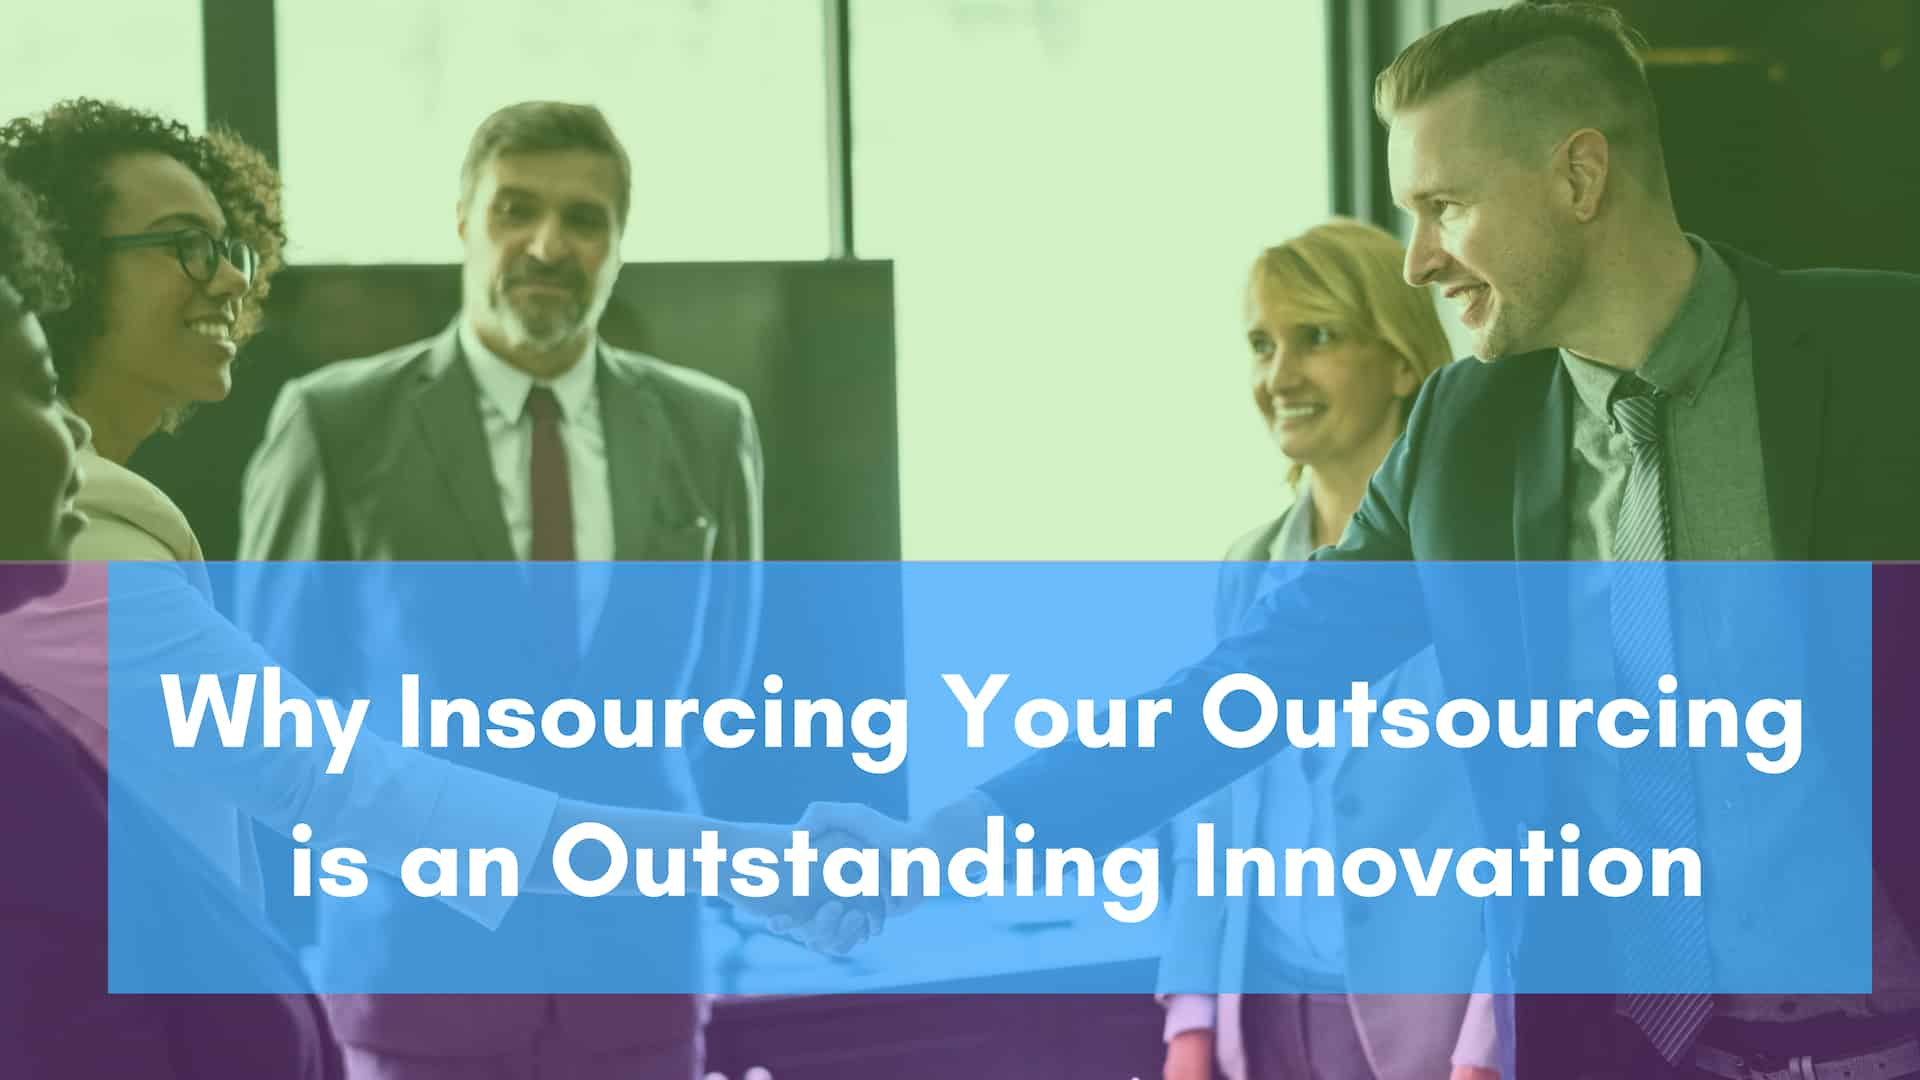 Why Insourcing Your Outsourcing Is An Outstanding Innovation